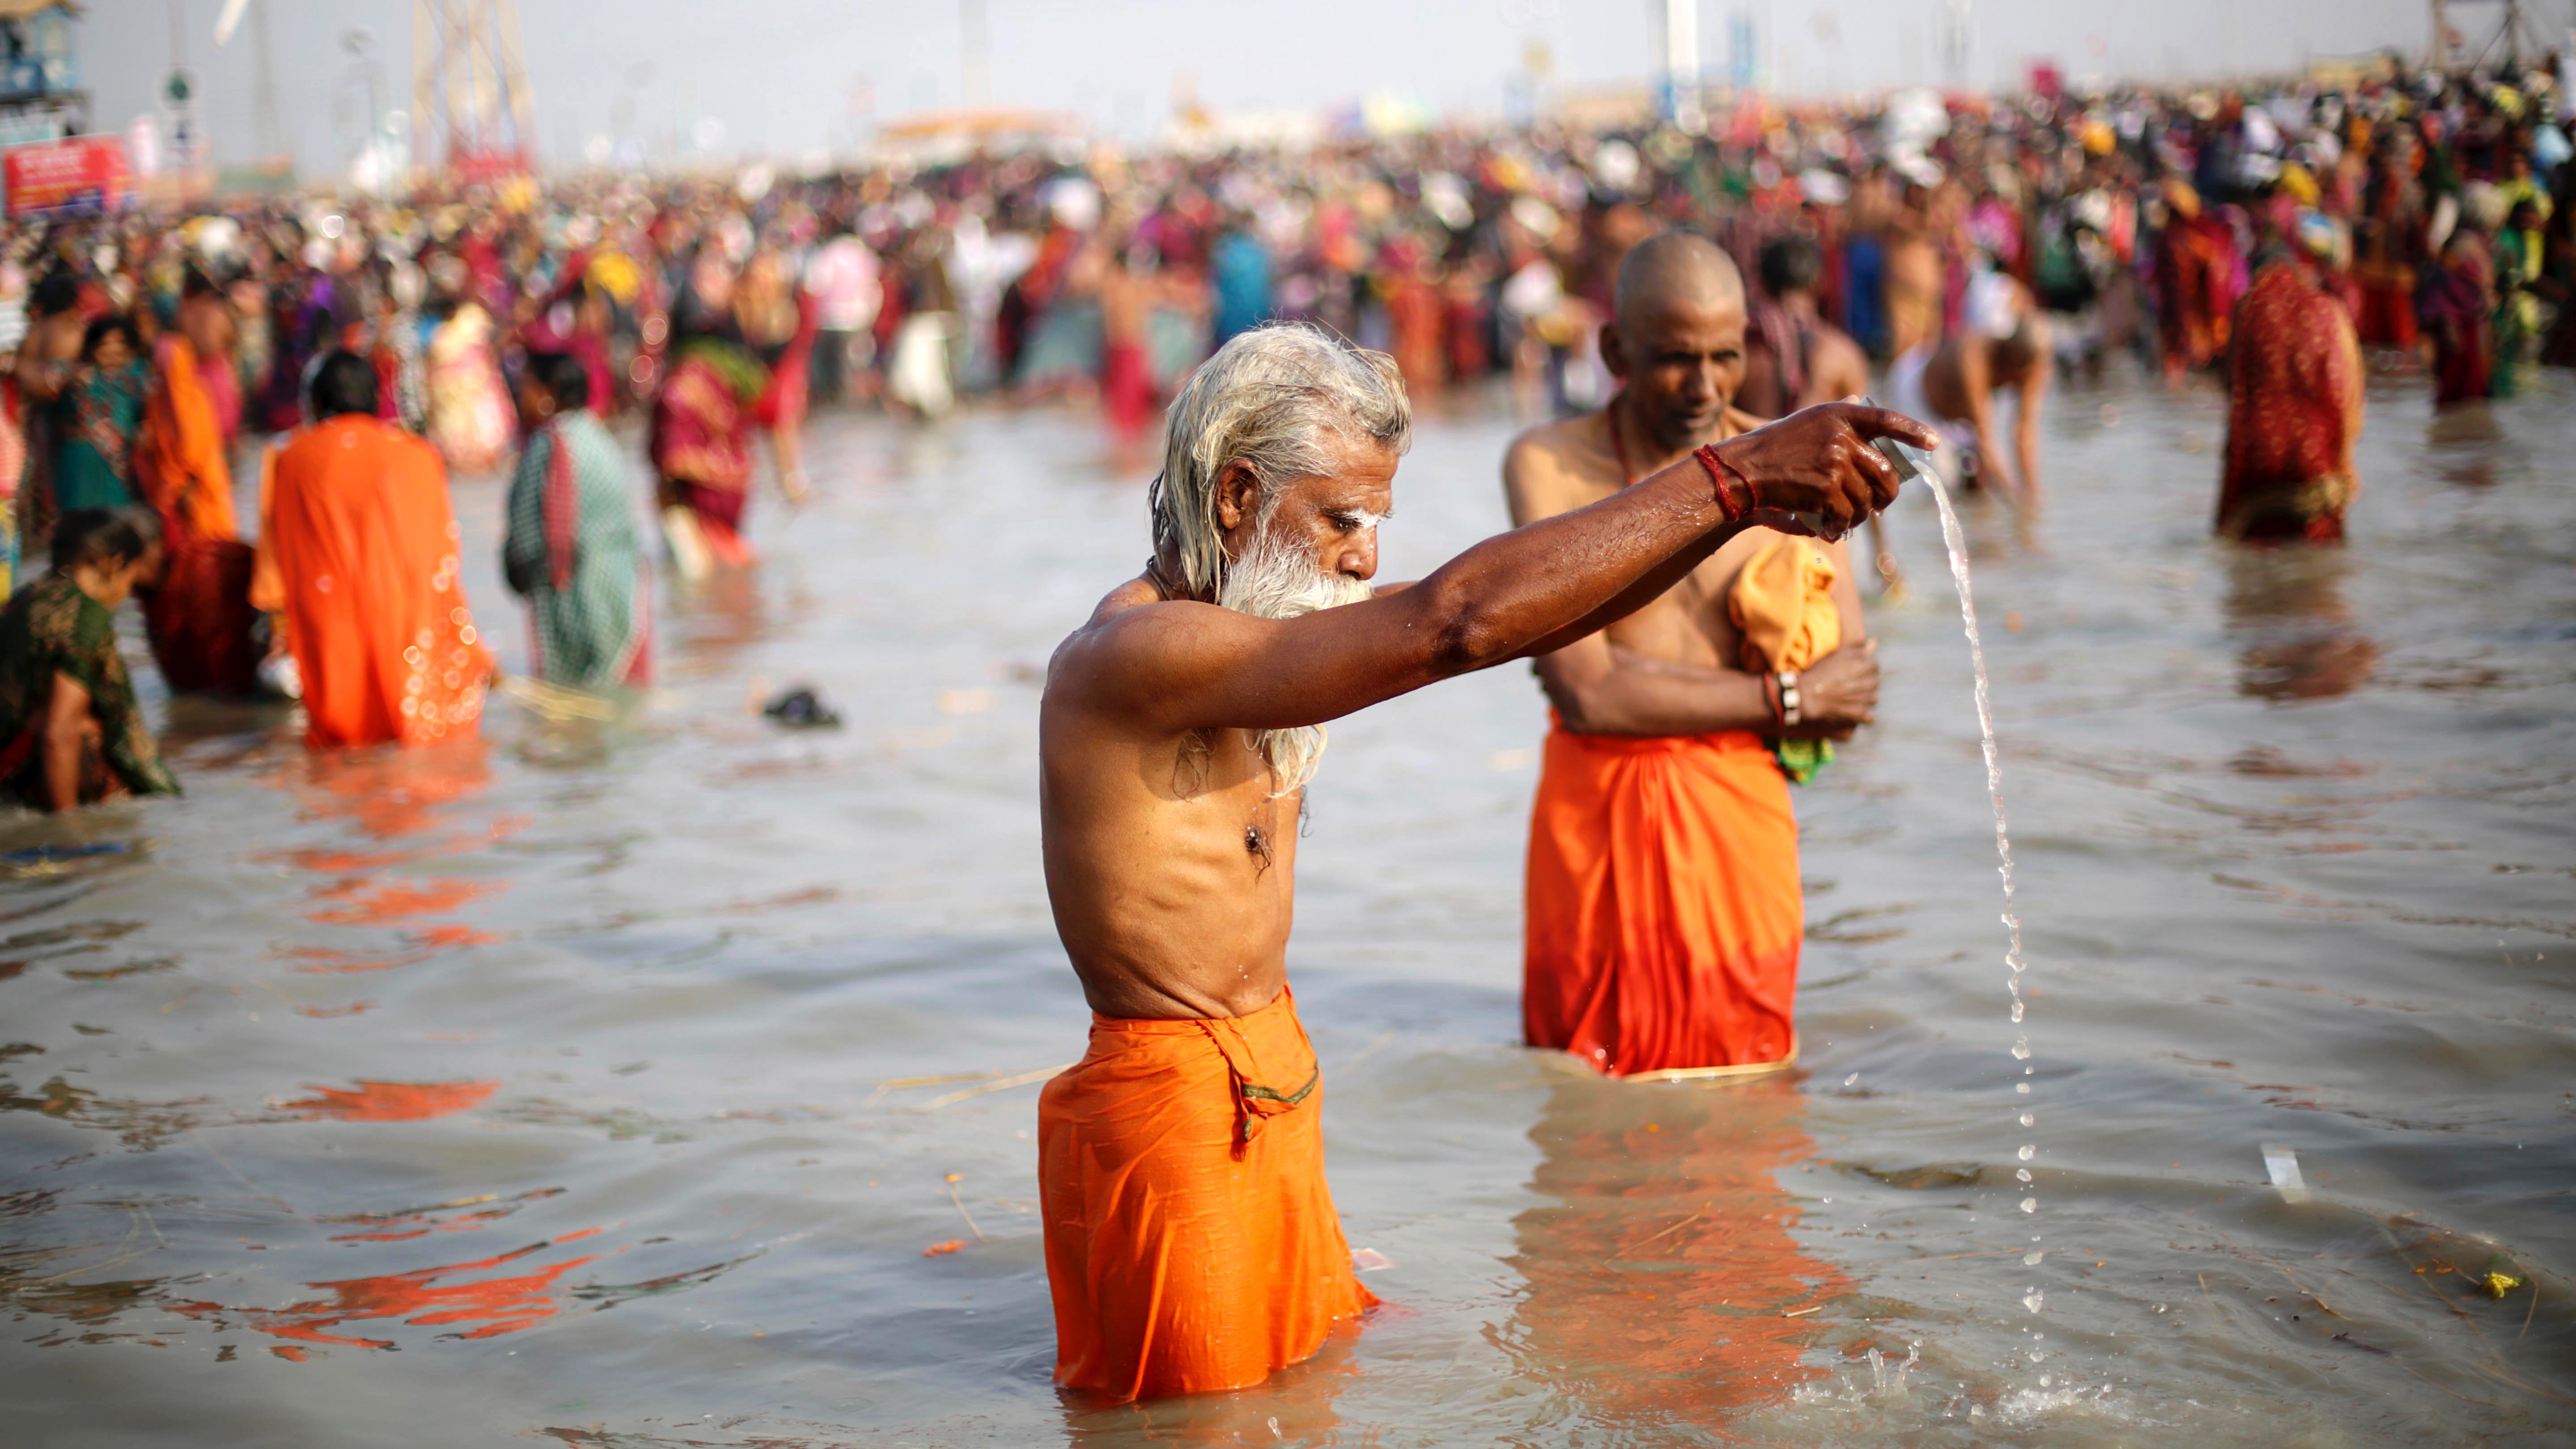 epa05716321 An Indian devotee prays on the Bay of Bengal at Sagar Island, during the Ganga Sagar annual festival, 130 km south of Calcutta, eastern India, 14 January 2017. The Gangasagar Festival is an annual gathering of Hindu pilgrims during Makar Sankranti at Sagar Island, 130 km south of Calcutta in West Bengal, to take a dip in sacred waters of Ganga River before it merges in the Bay of Bengal.  EPA/PIYAL ADHIKARY